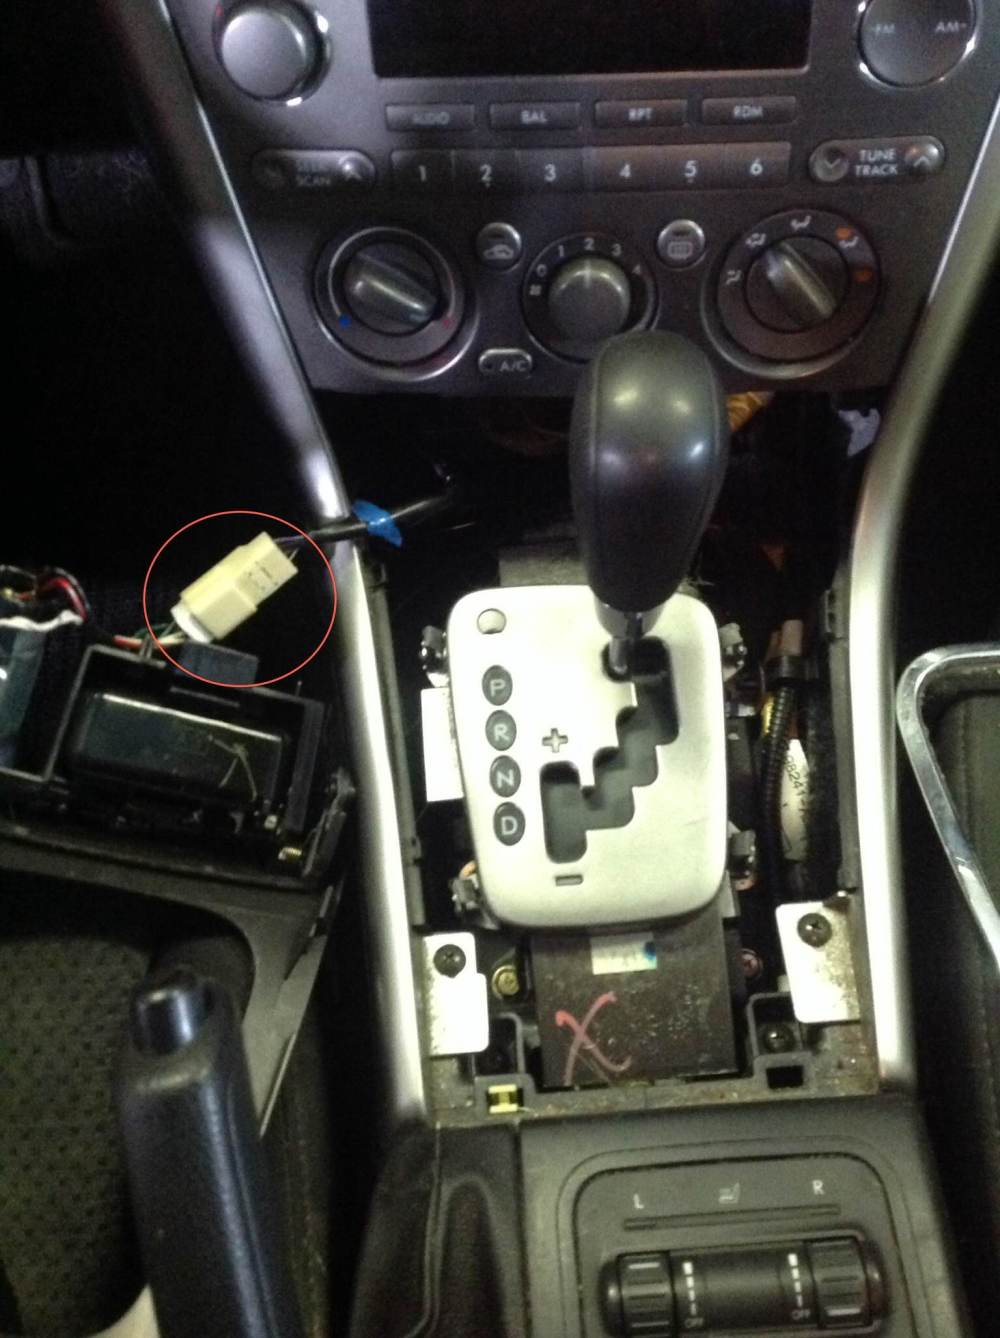 medium resolution of need to replace gear shifter light on 2005 outback photo 3 jpg